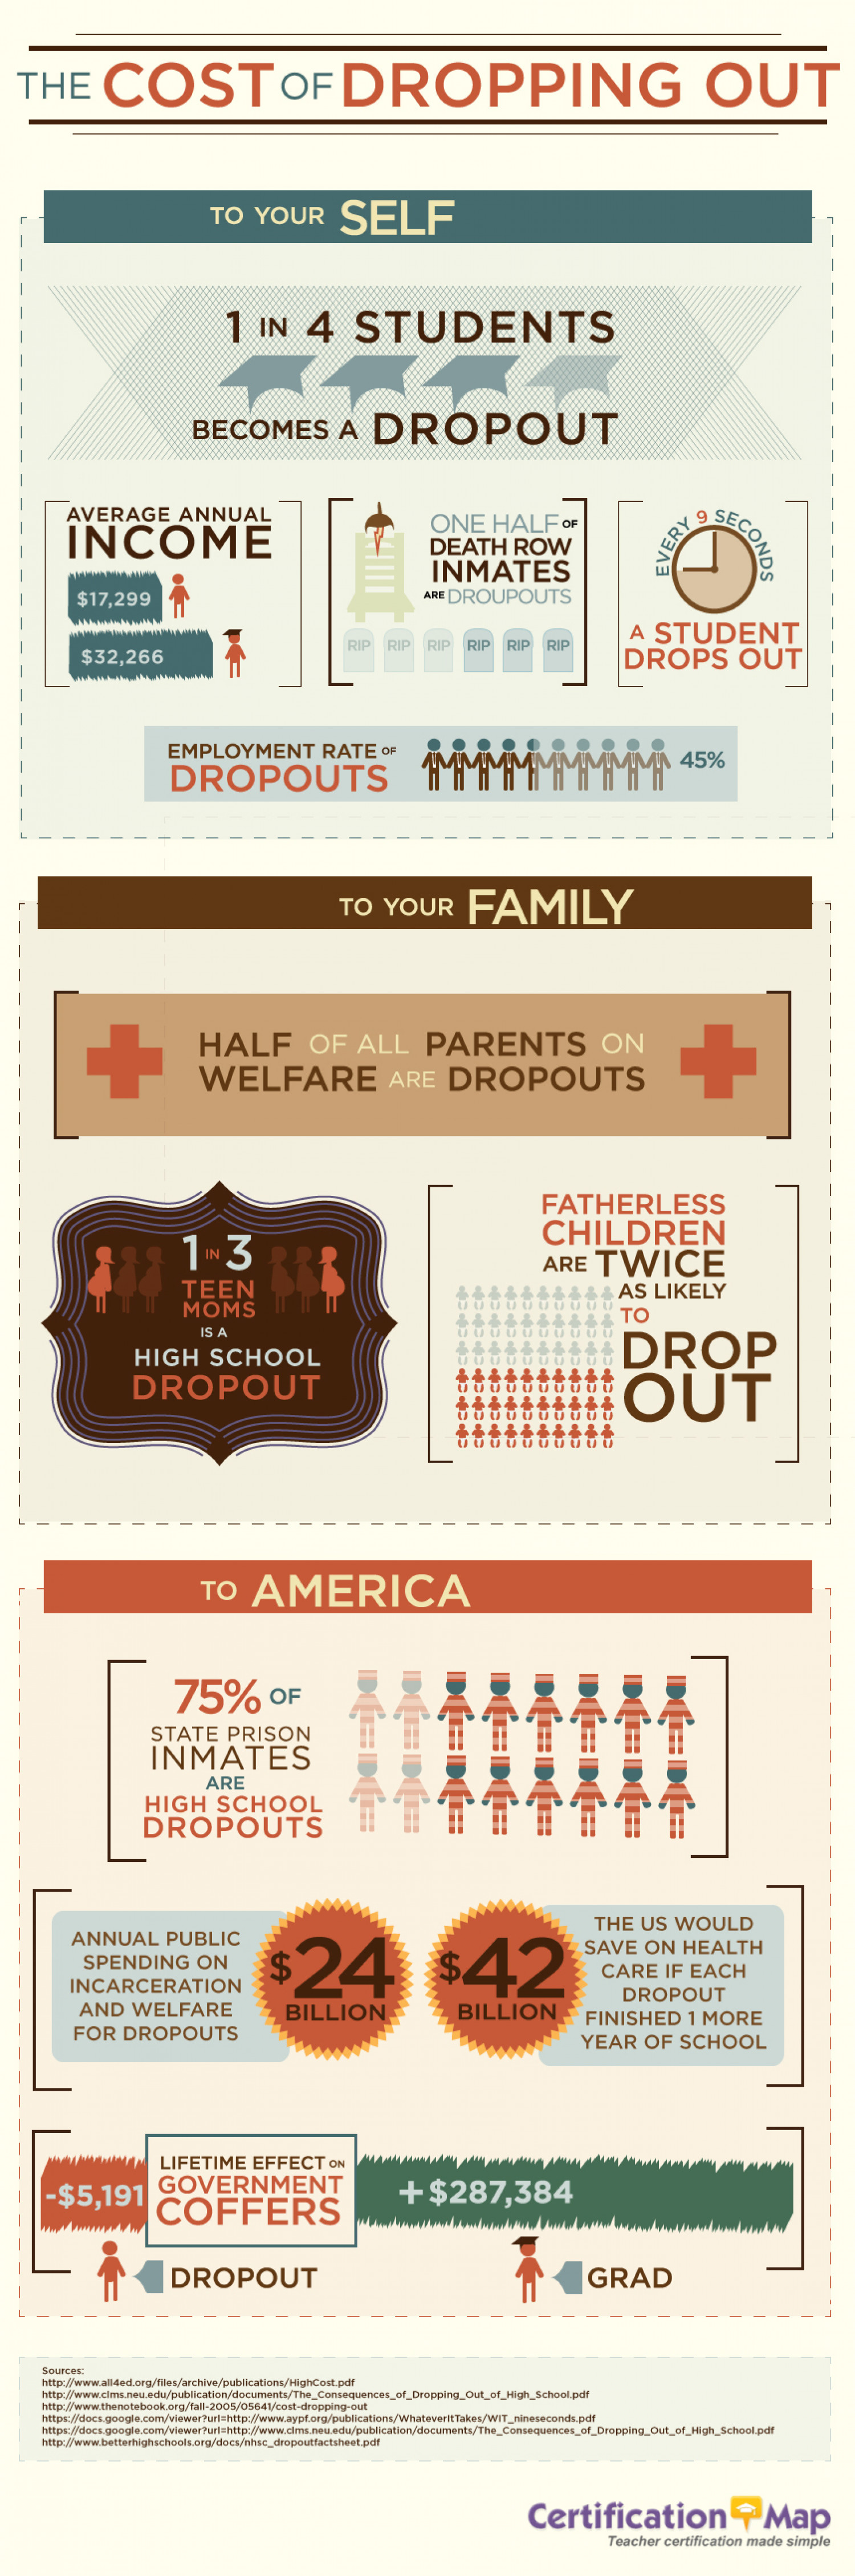 The Cost of Dropping Out Infographic